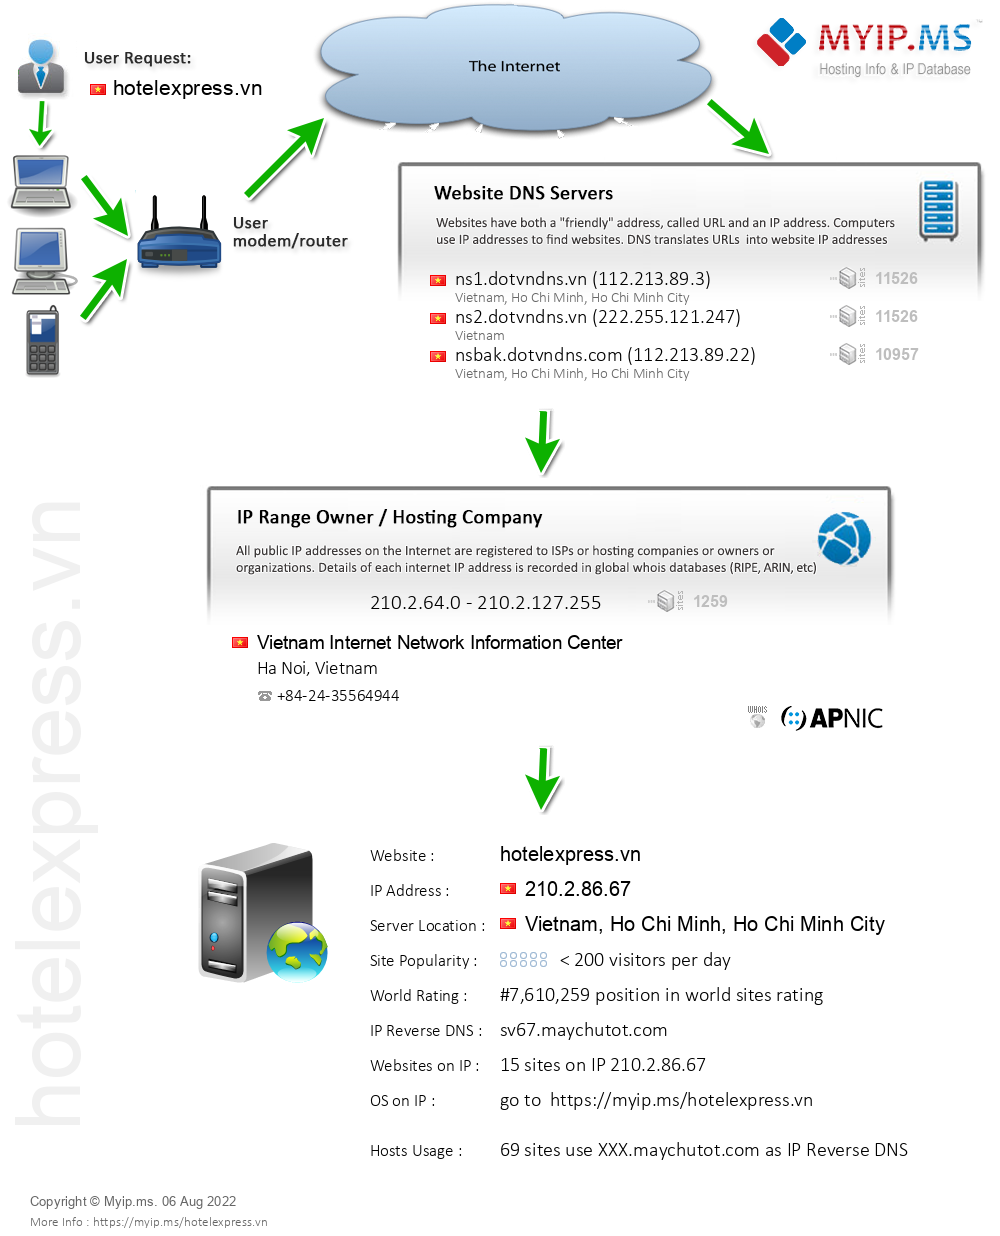 Hotelexpress.vn - Website Hosting Visual IP Diagram